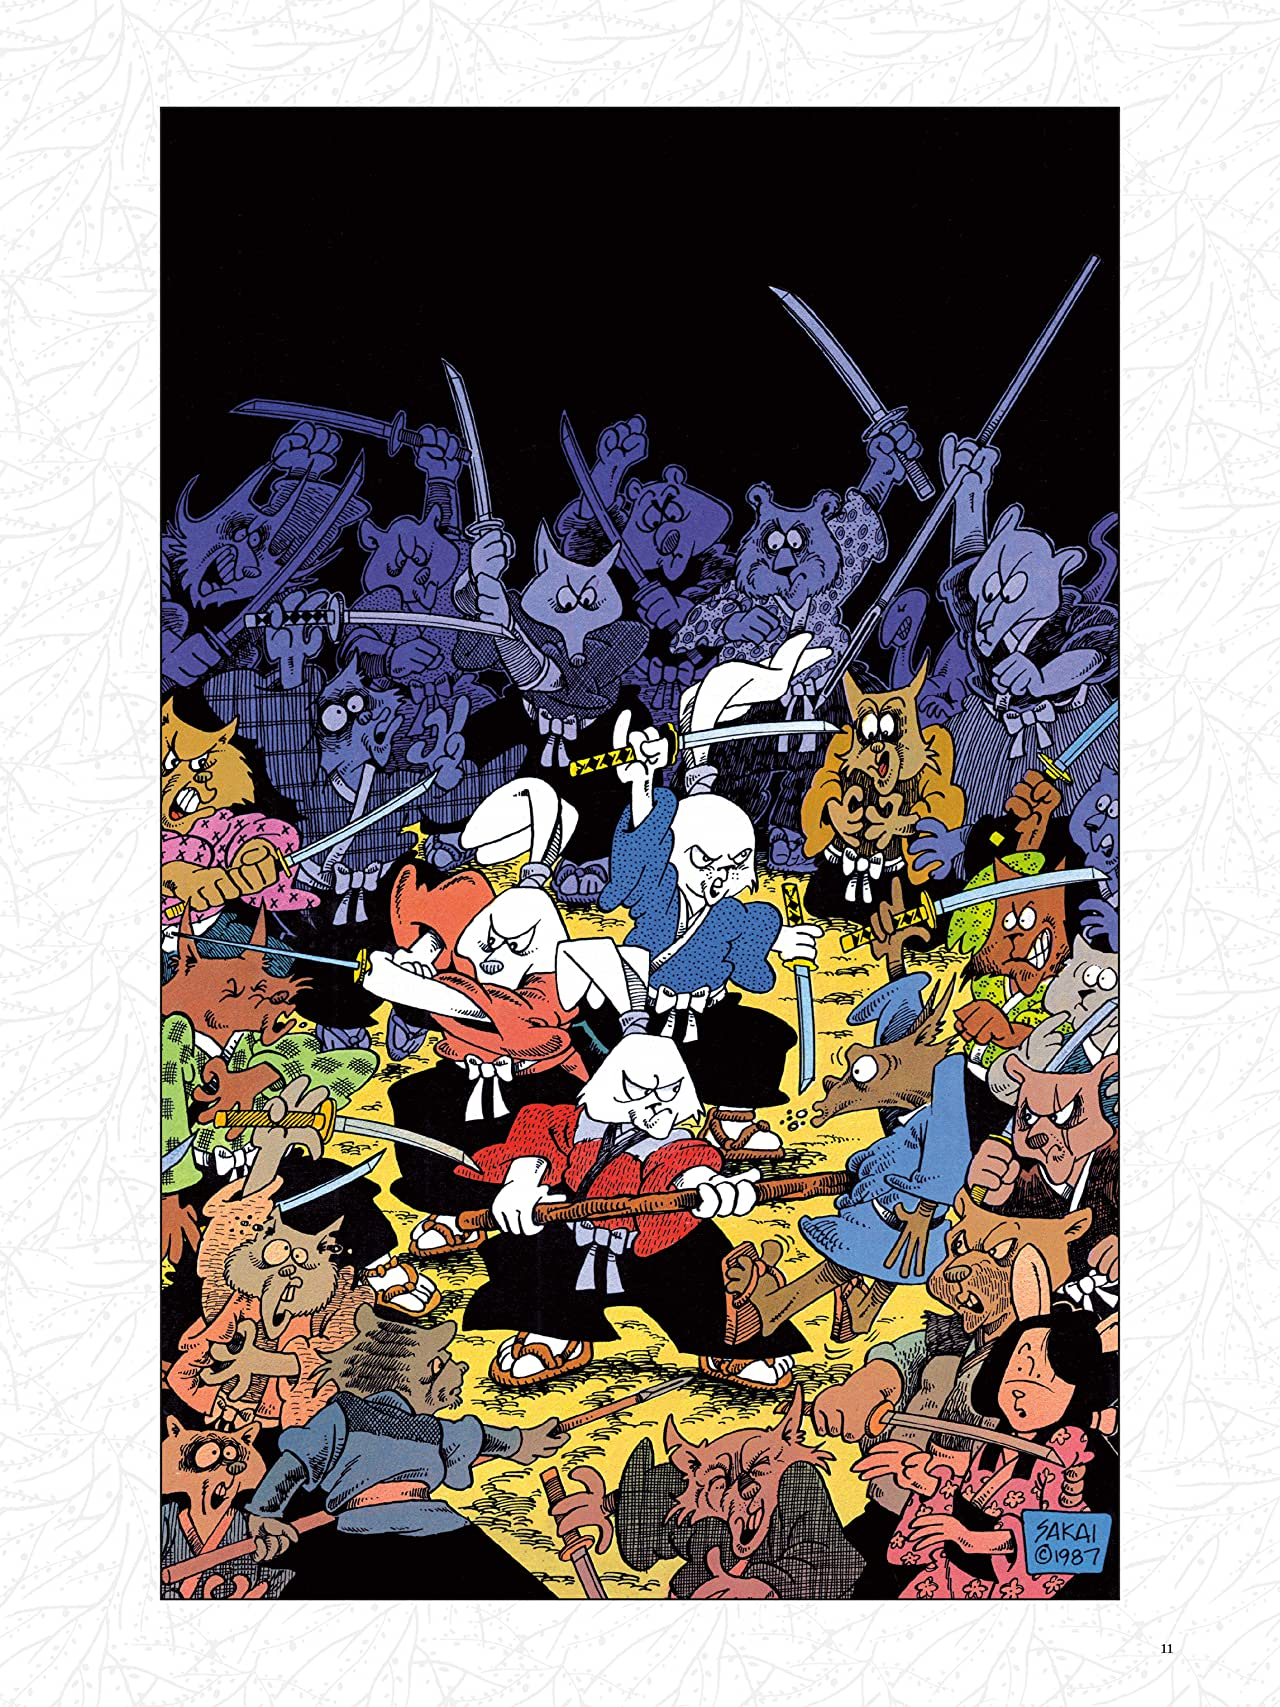 Usagi Yojimbo: 35 Years of Covers